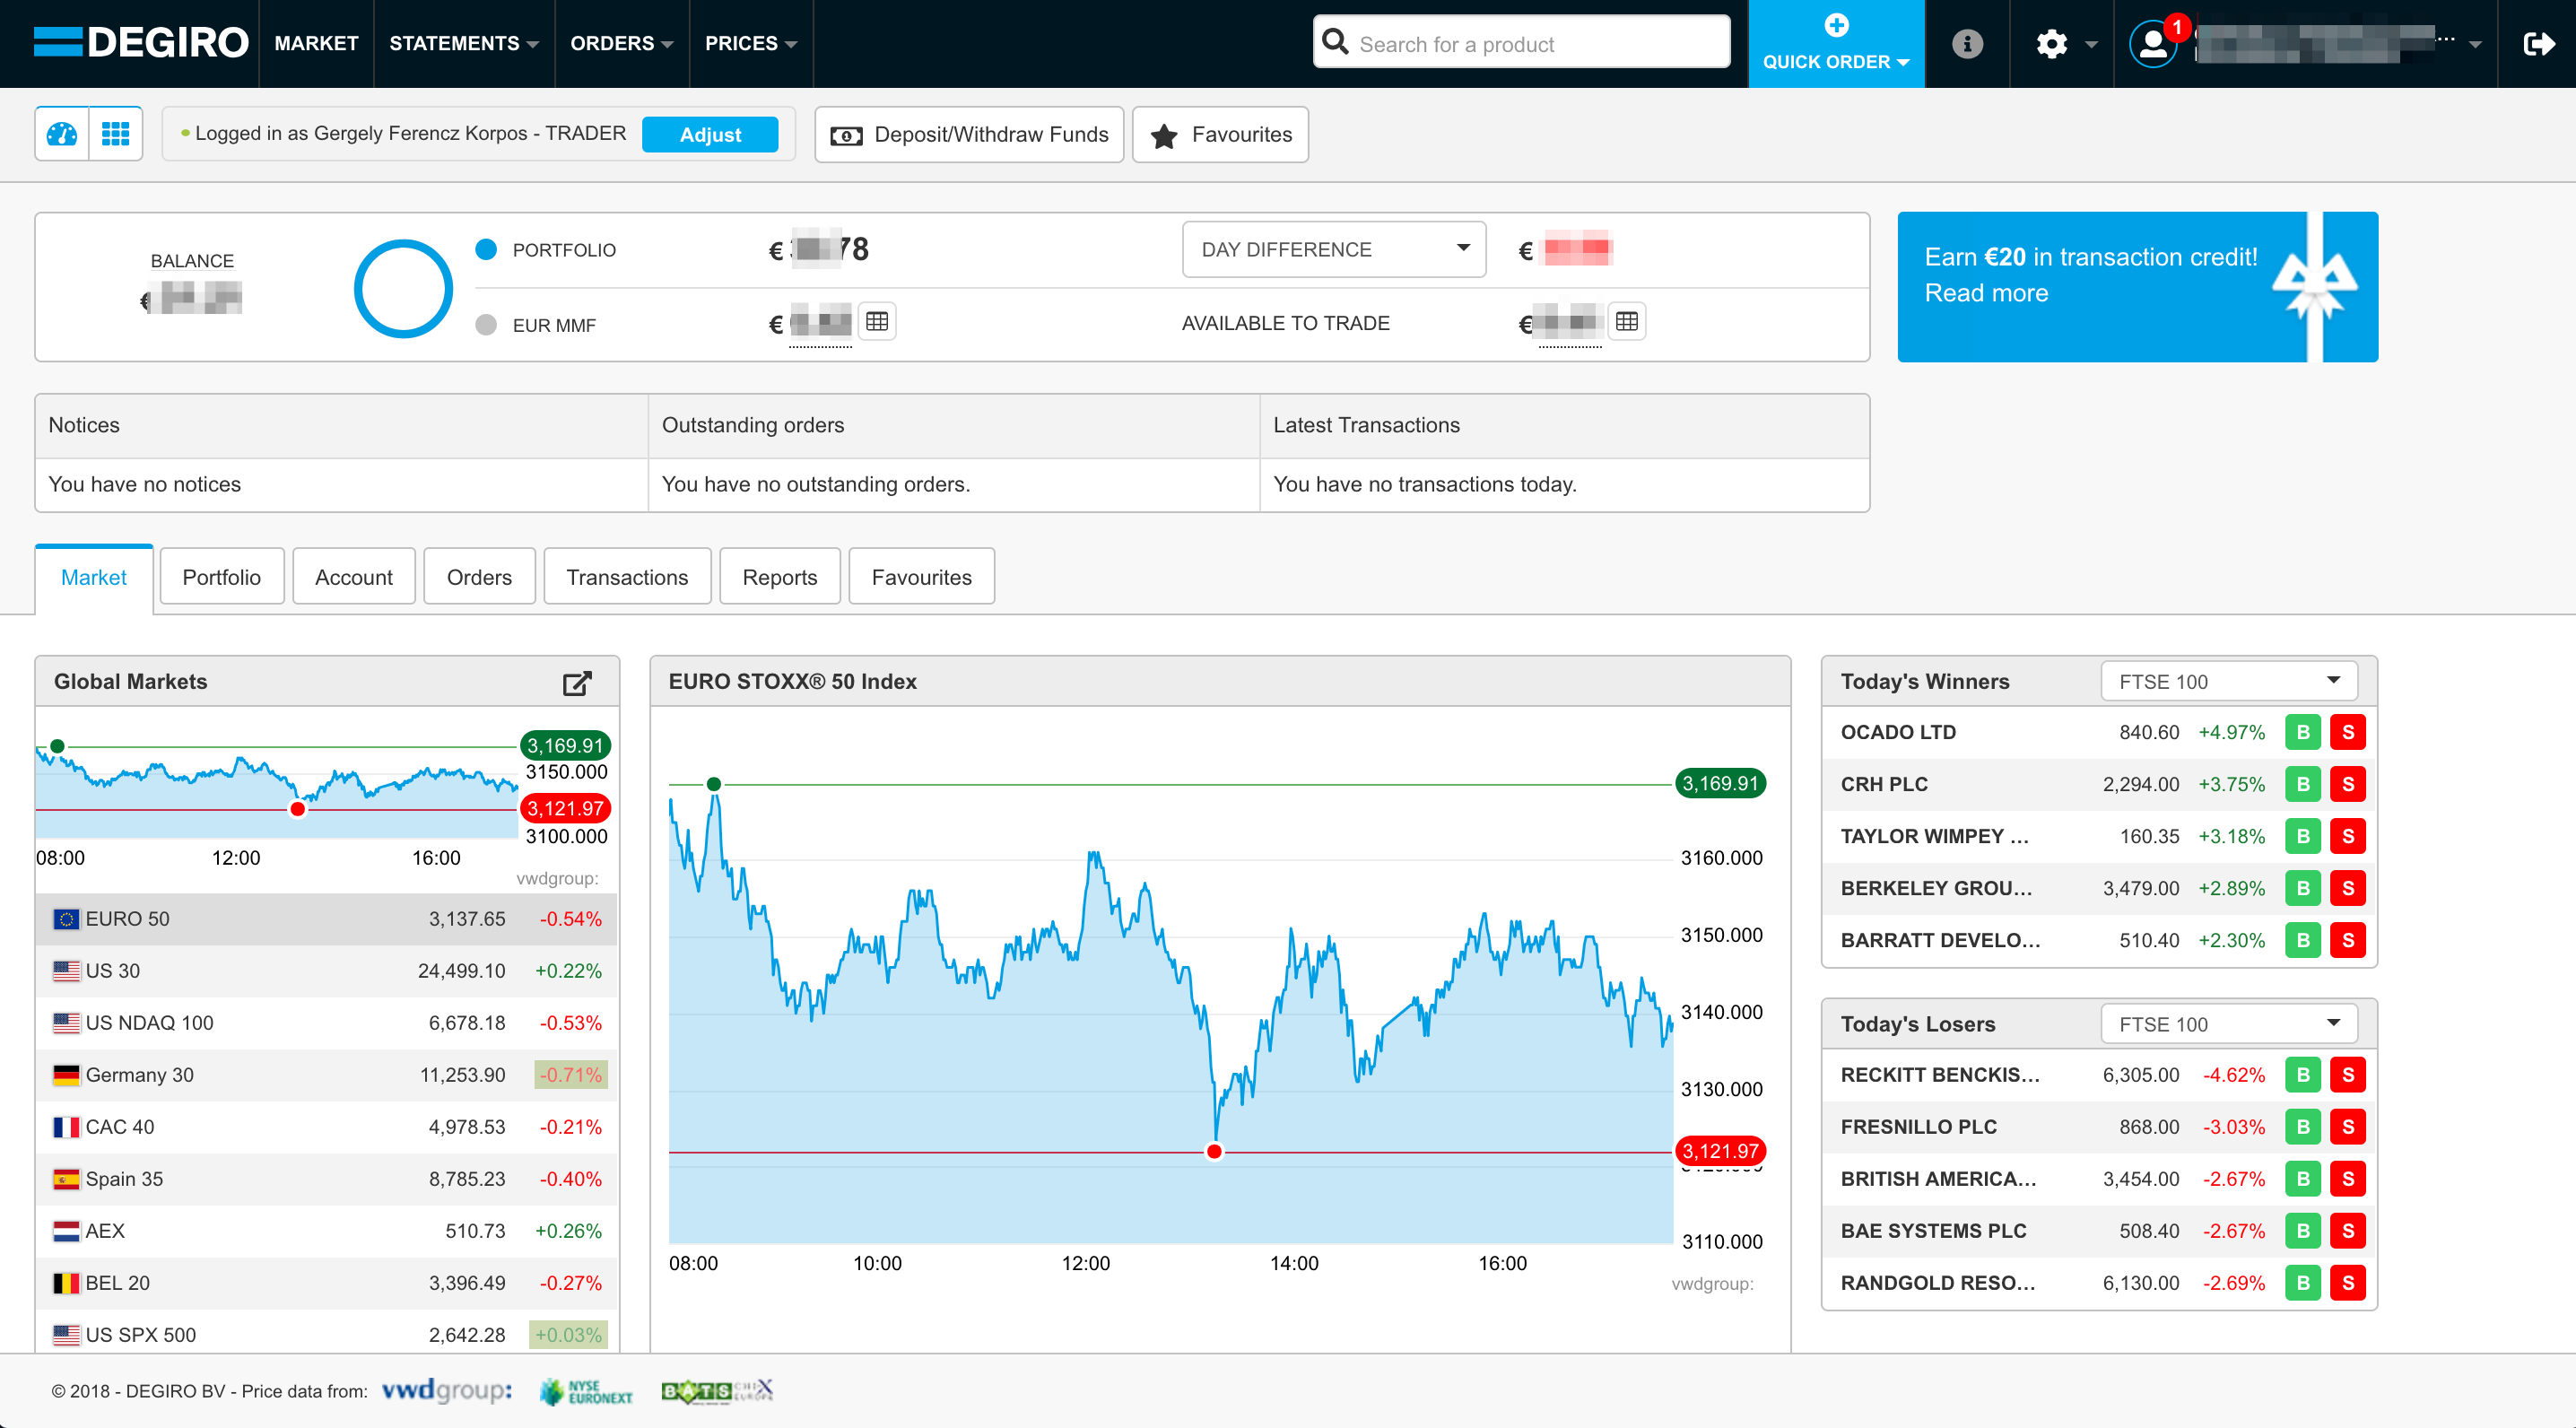 Web trading platform of DEGIRO, a Swissquote alternative